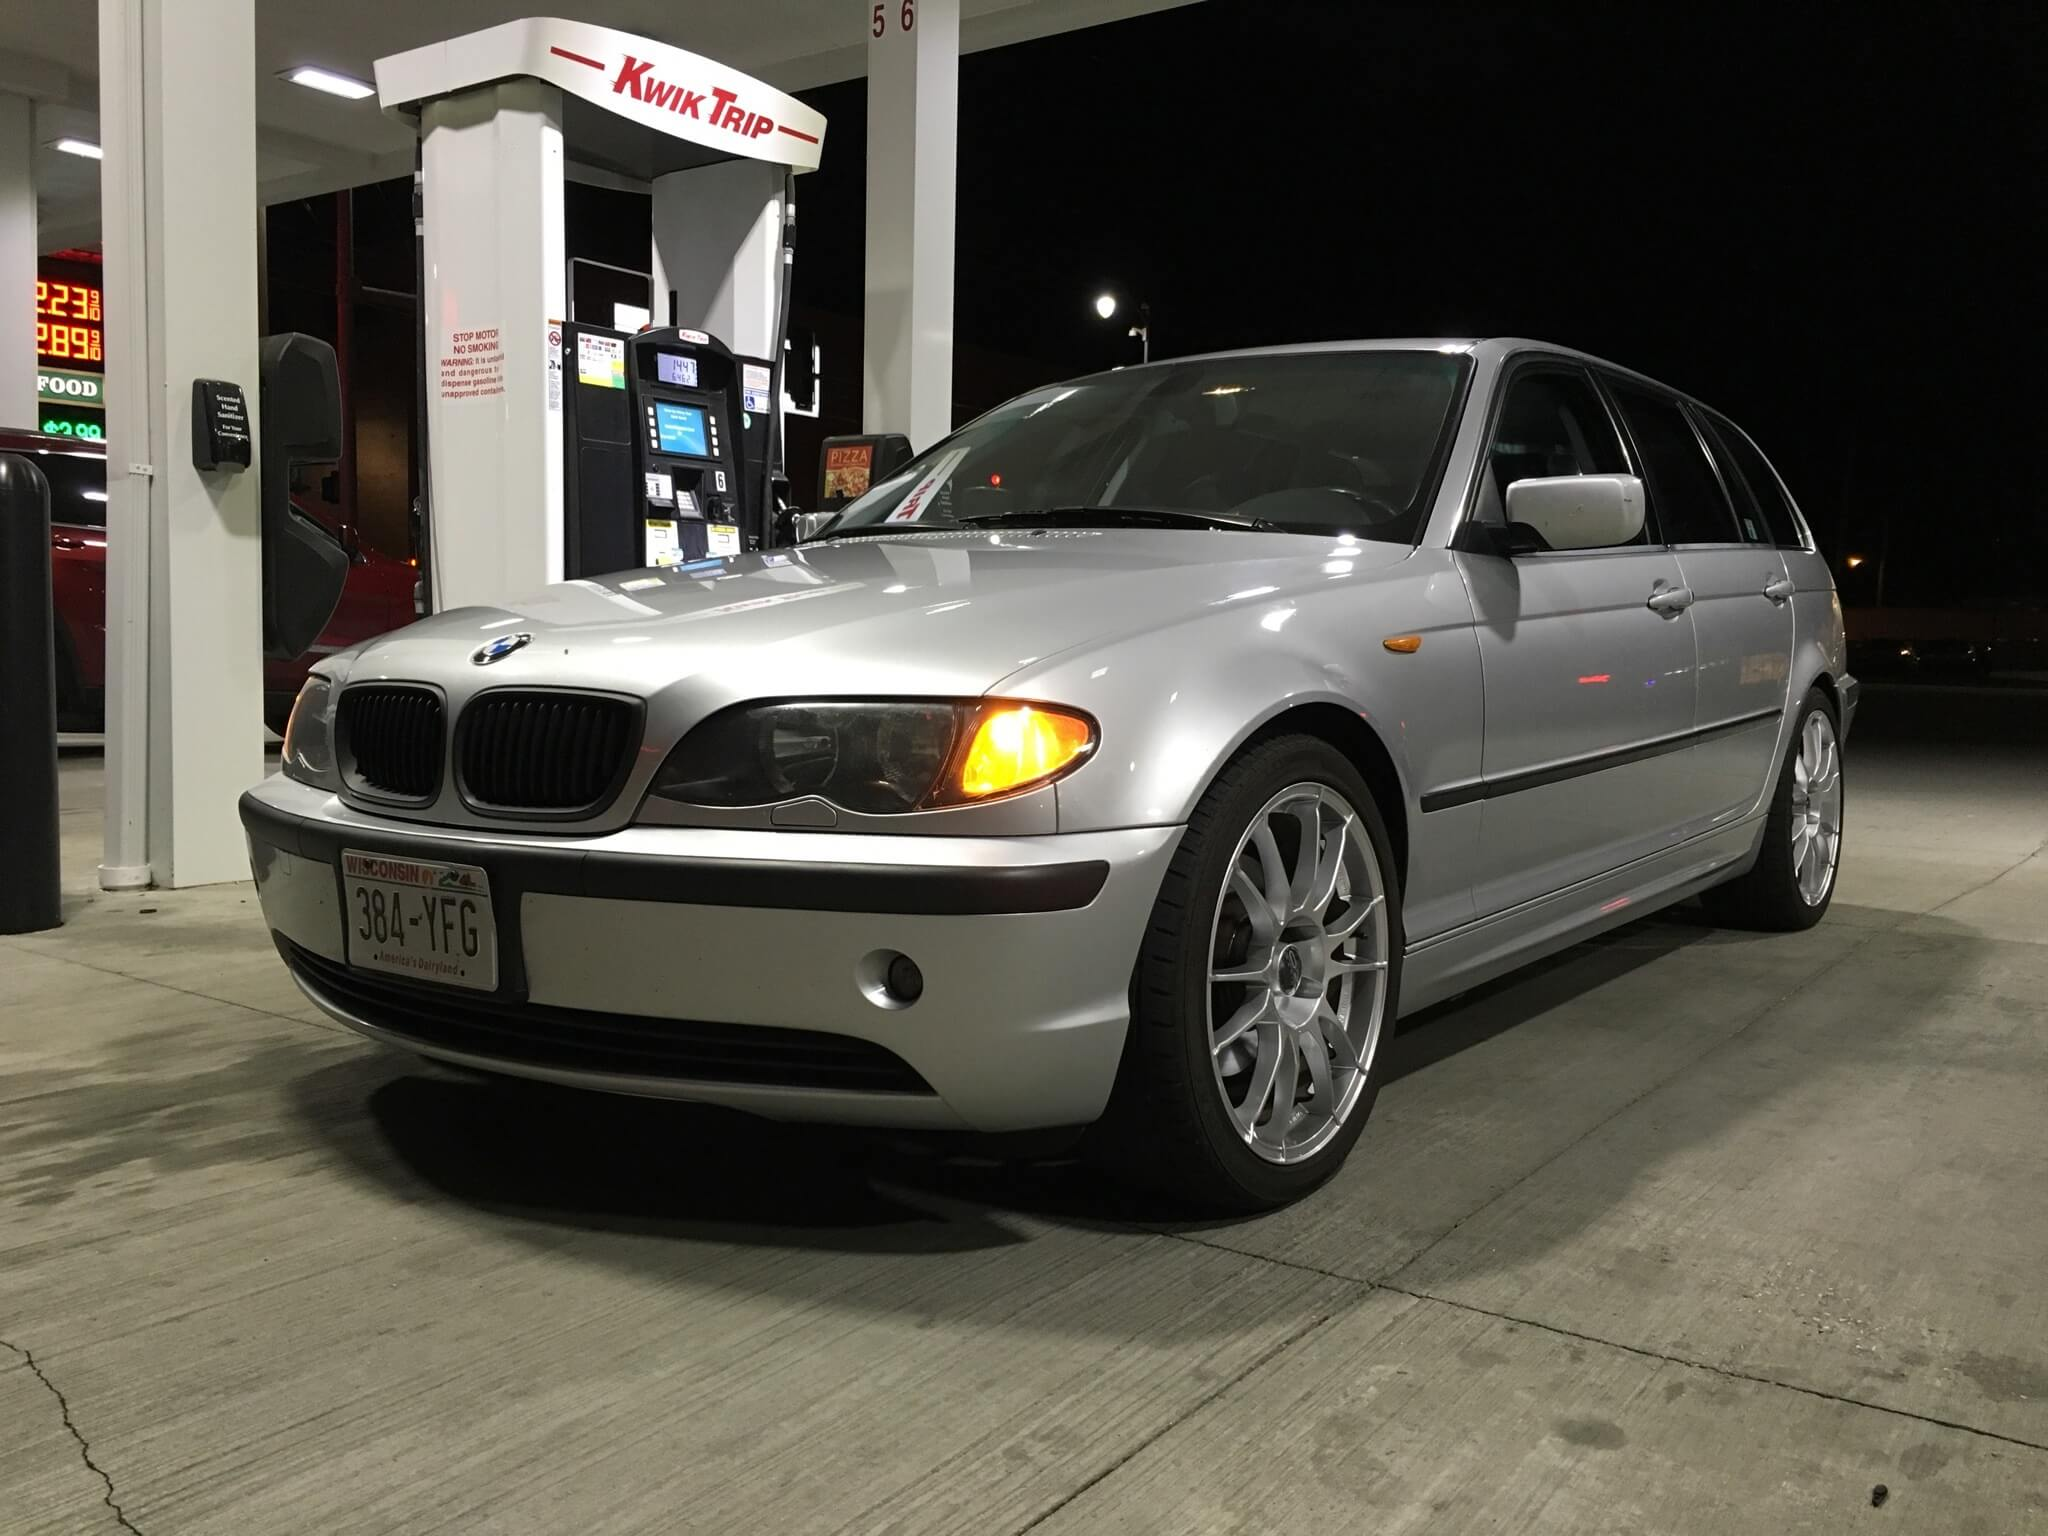 a silver 2005 BMW 325ixT filling up at the gas station